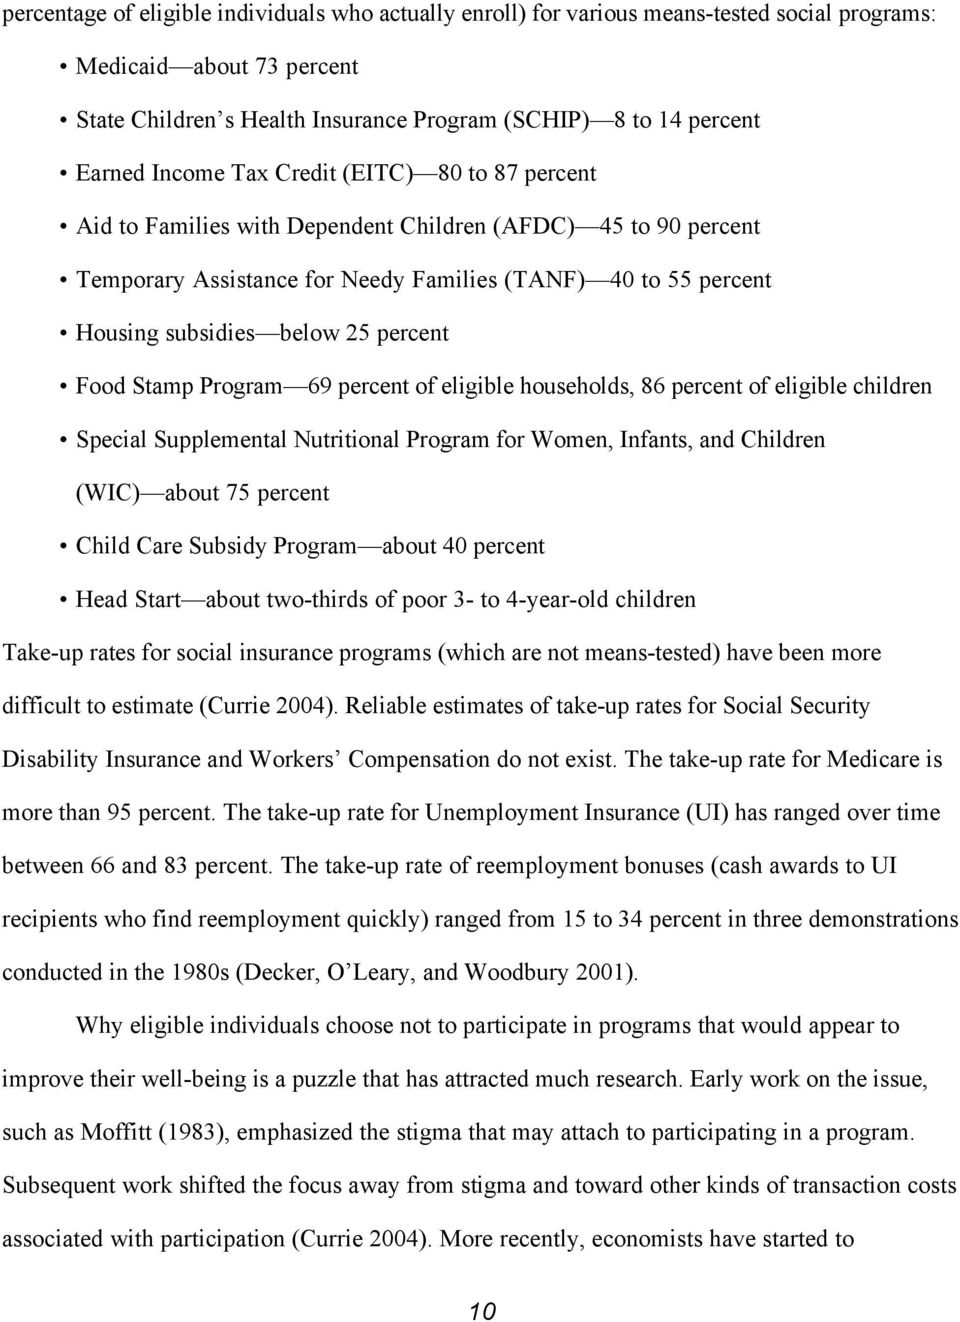 percent Food Stamp Program 69 percent of eligible households, 86 percent of eligible children Special Supplemental Nutritional Program for Women, Infants, and Children (WIC) about 75 percent Child